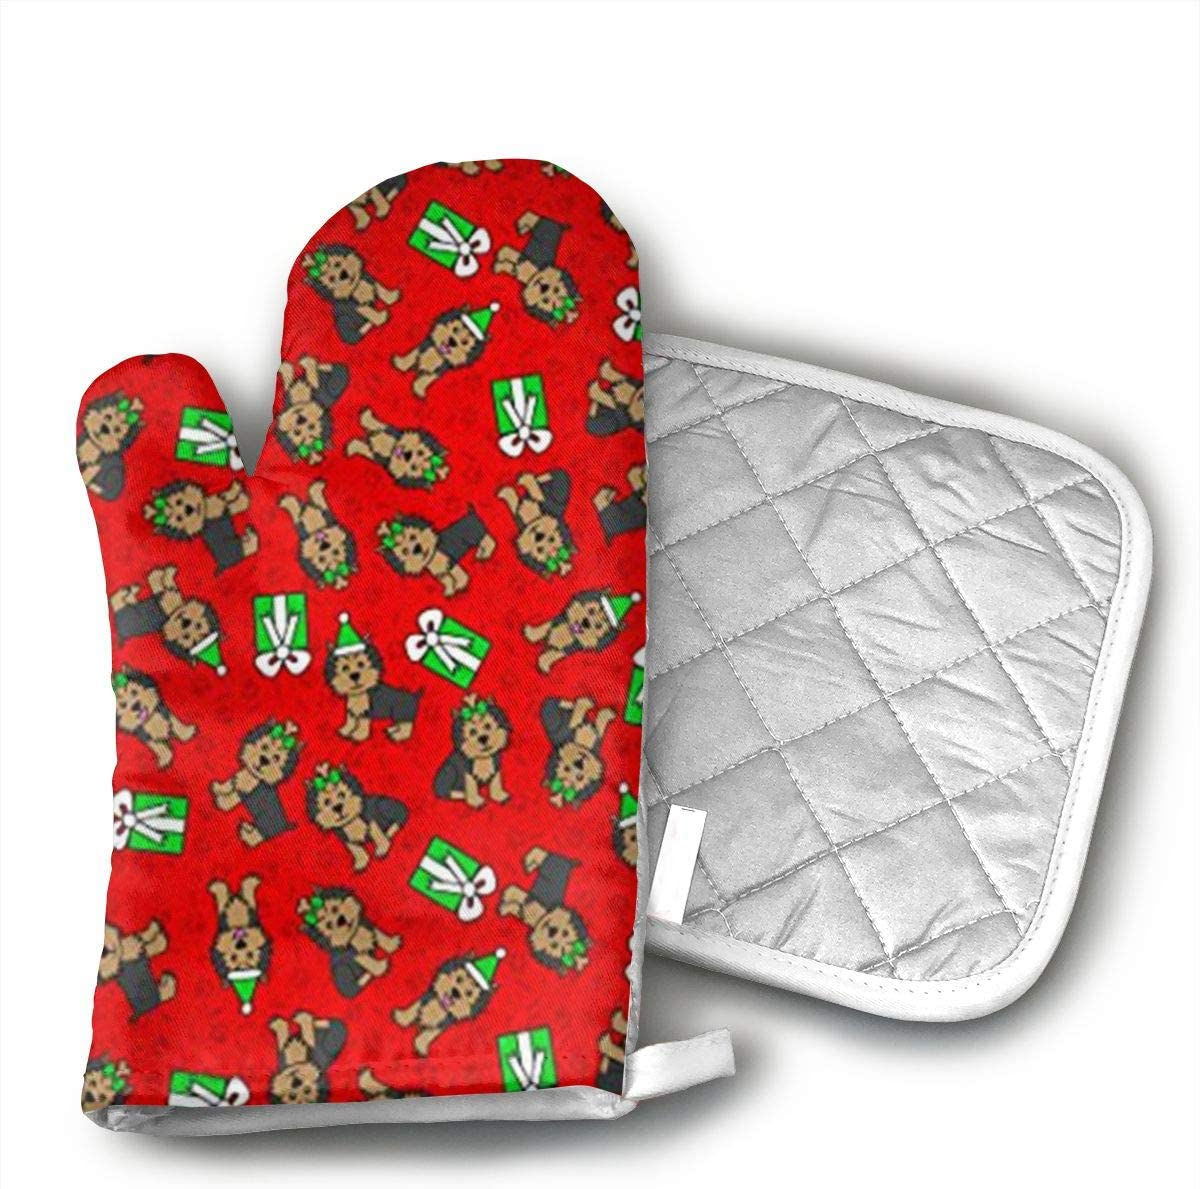 Sjiwqoj8 Merry Yorkies Holiday Kitchen Oven Mitts,Oven Mitts and Pot Holders,Heat Resistant with Quilted Cotton Lining,Cooking,Baking,Grilling,Barbecue